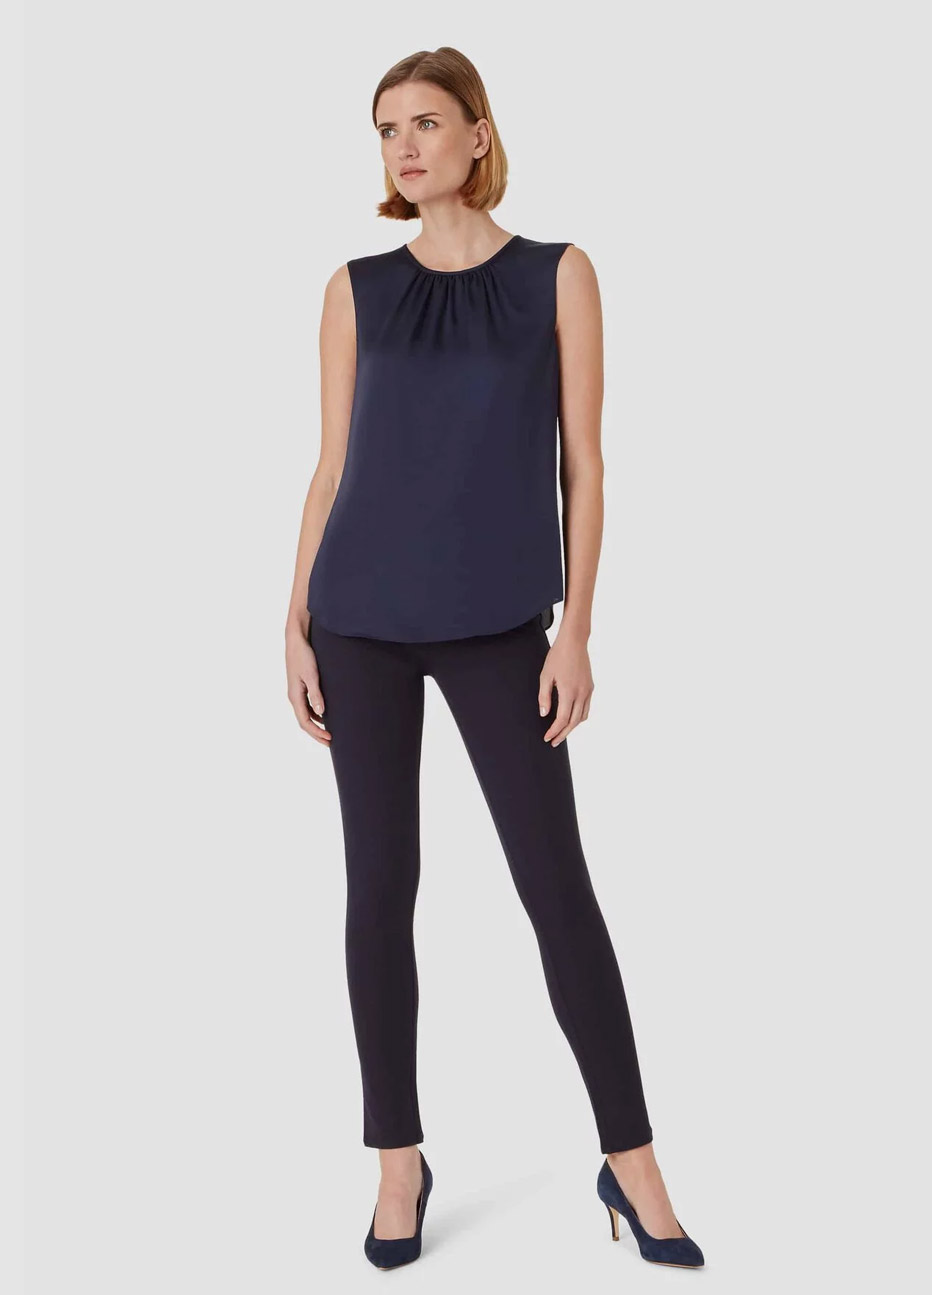 Satin blouse in navy worn with navy jeans by Hobbs.